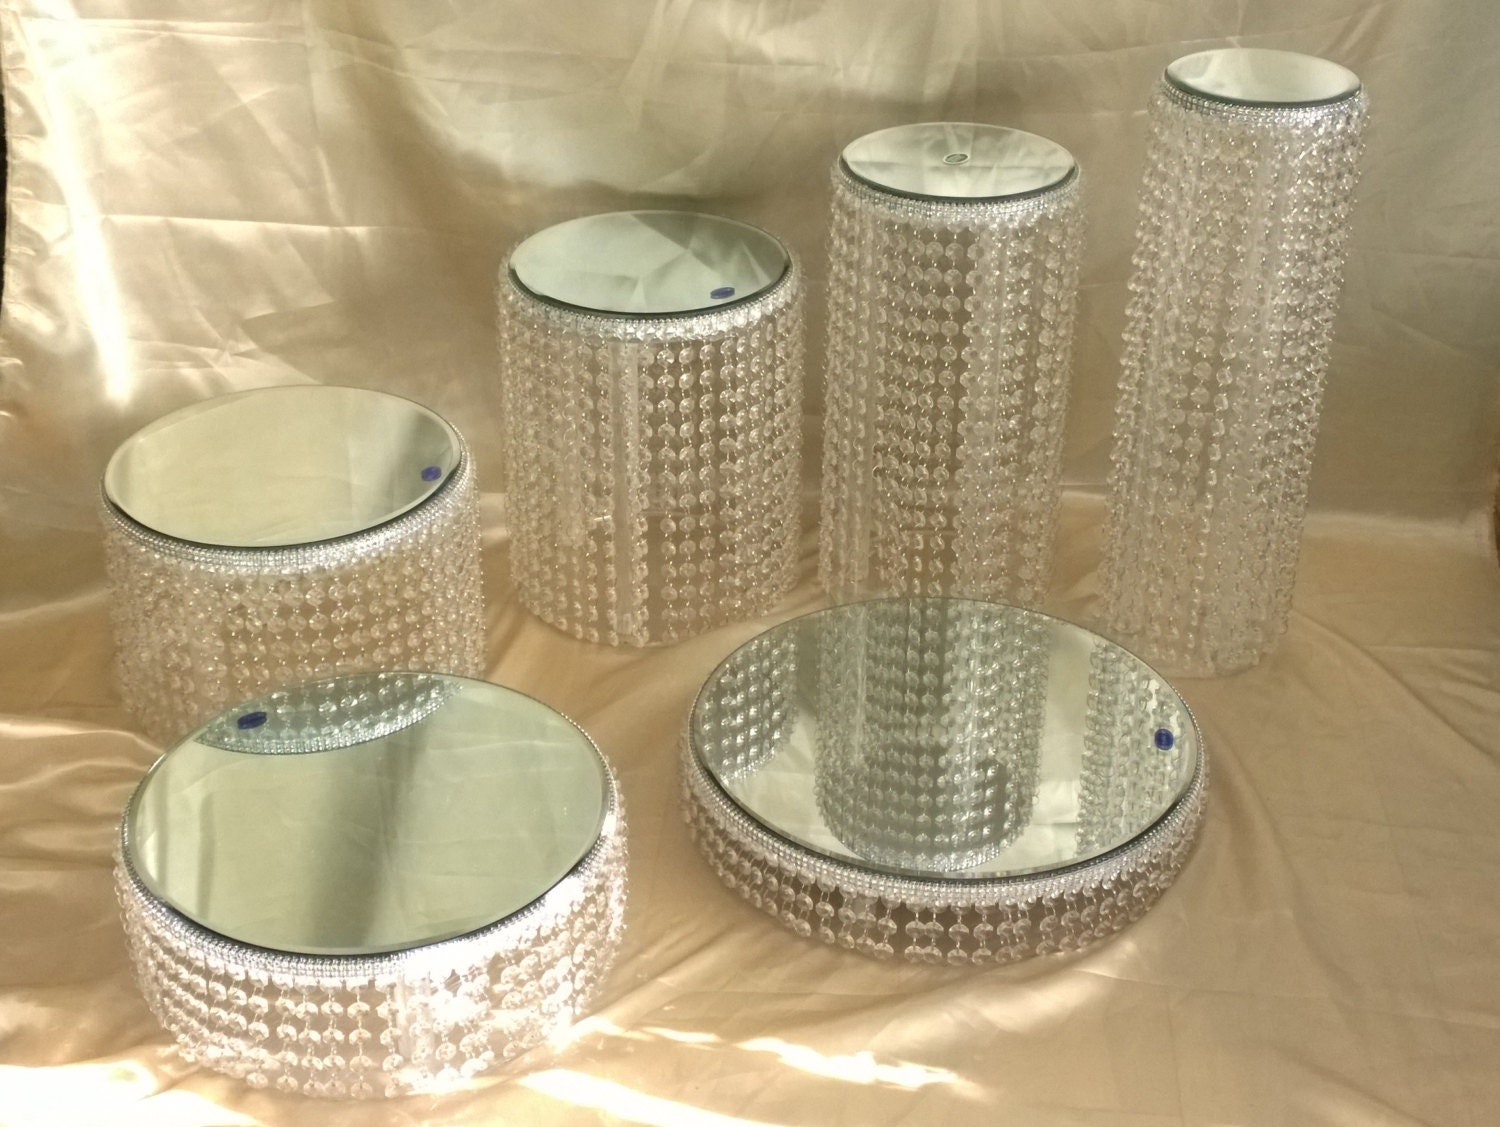 acrylic cake stand wedding cake stands Crystal cake stands 1 2 3 4 5 or 6 tiers in acrylic crystal wedding cake stand sets